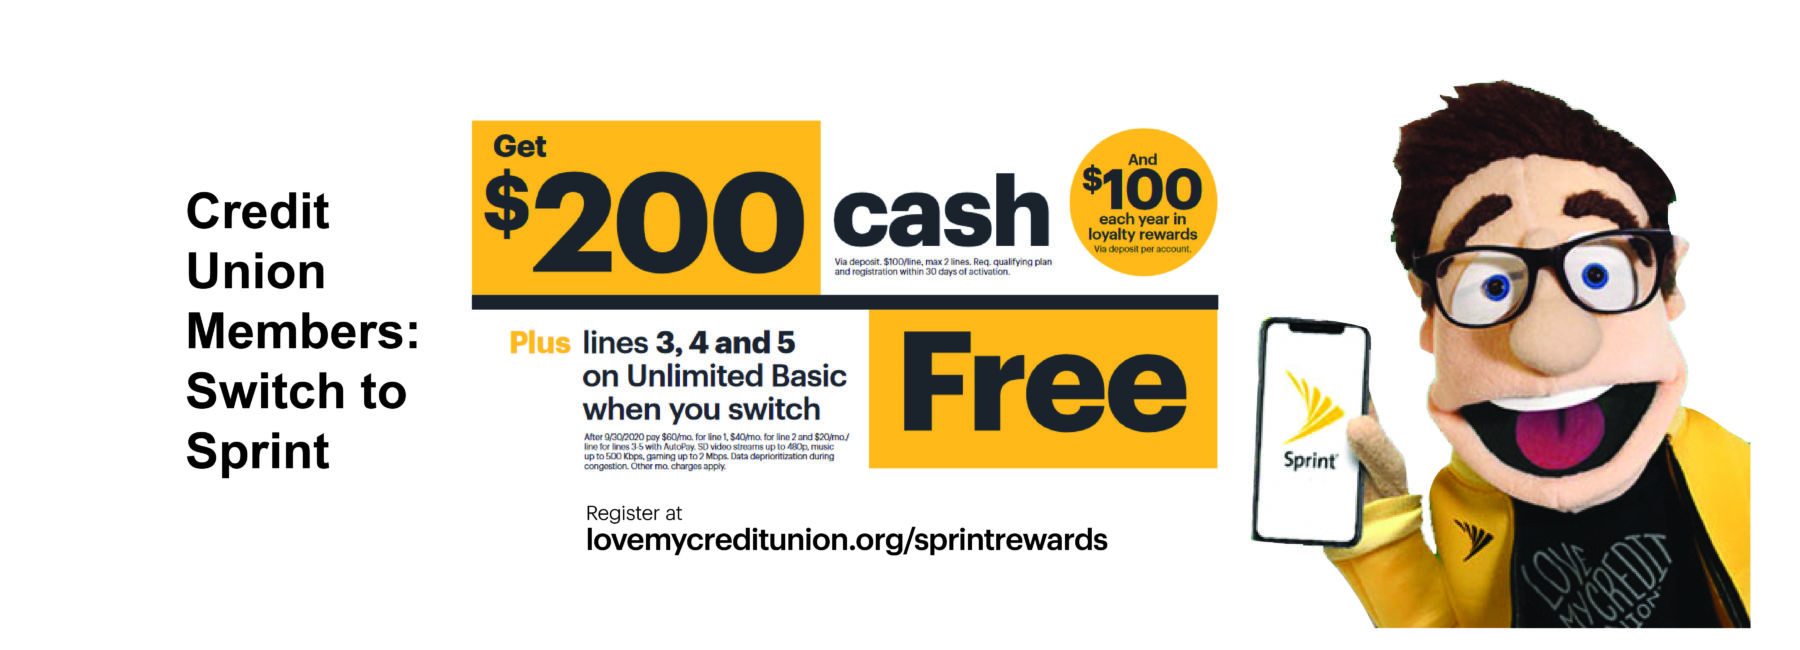 banner with text and cartoon image for Sprint $200 cash offer for switching